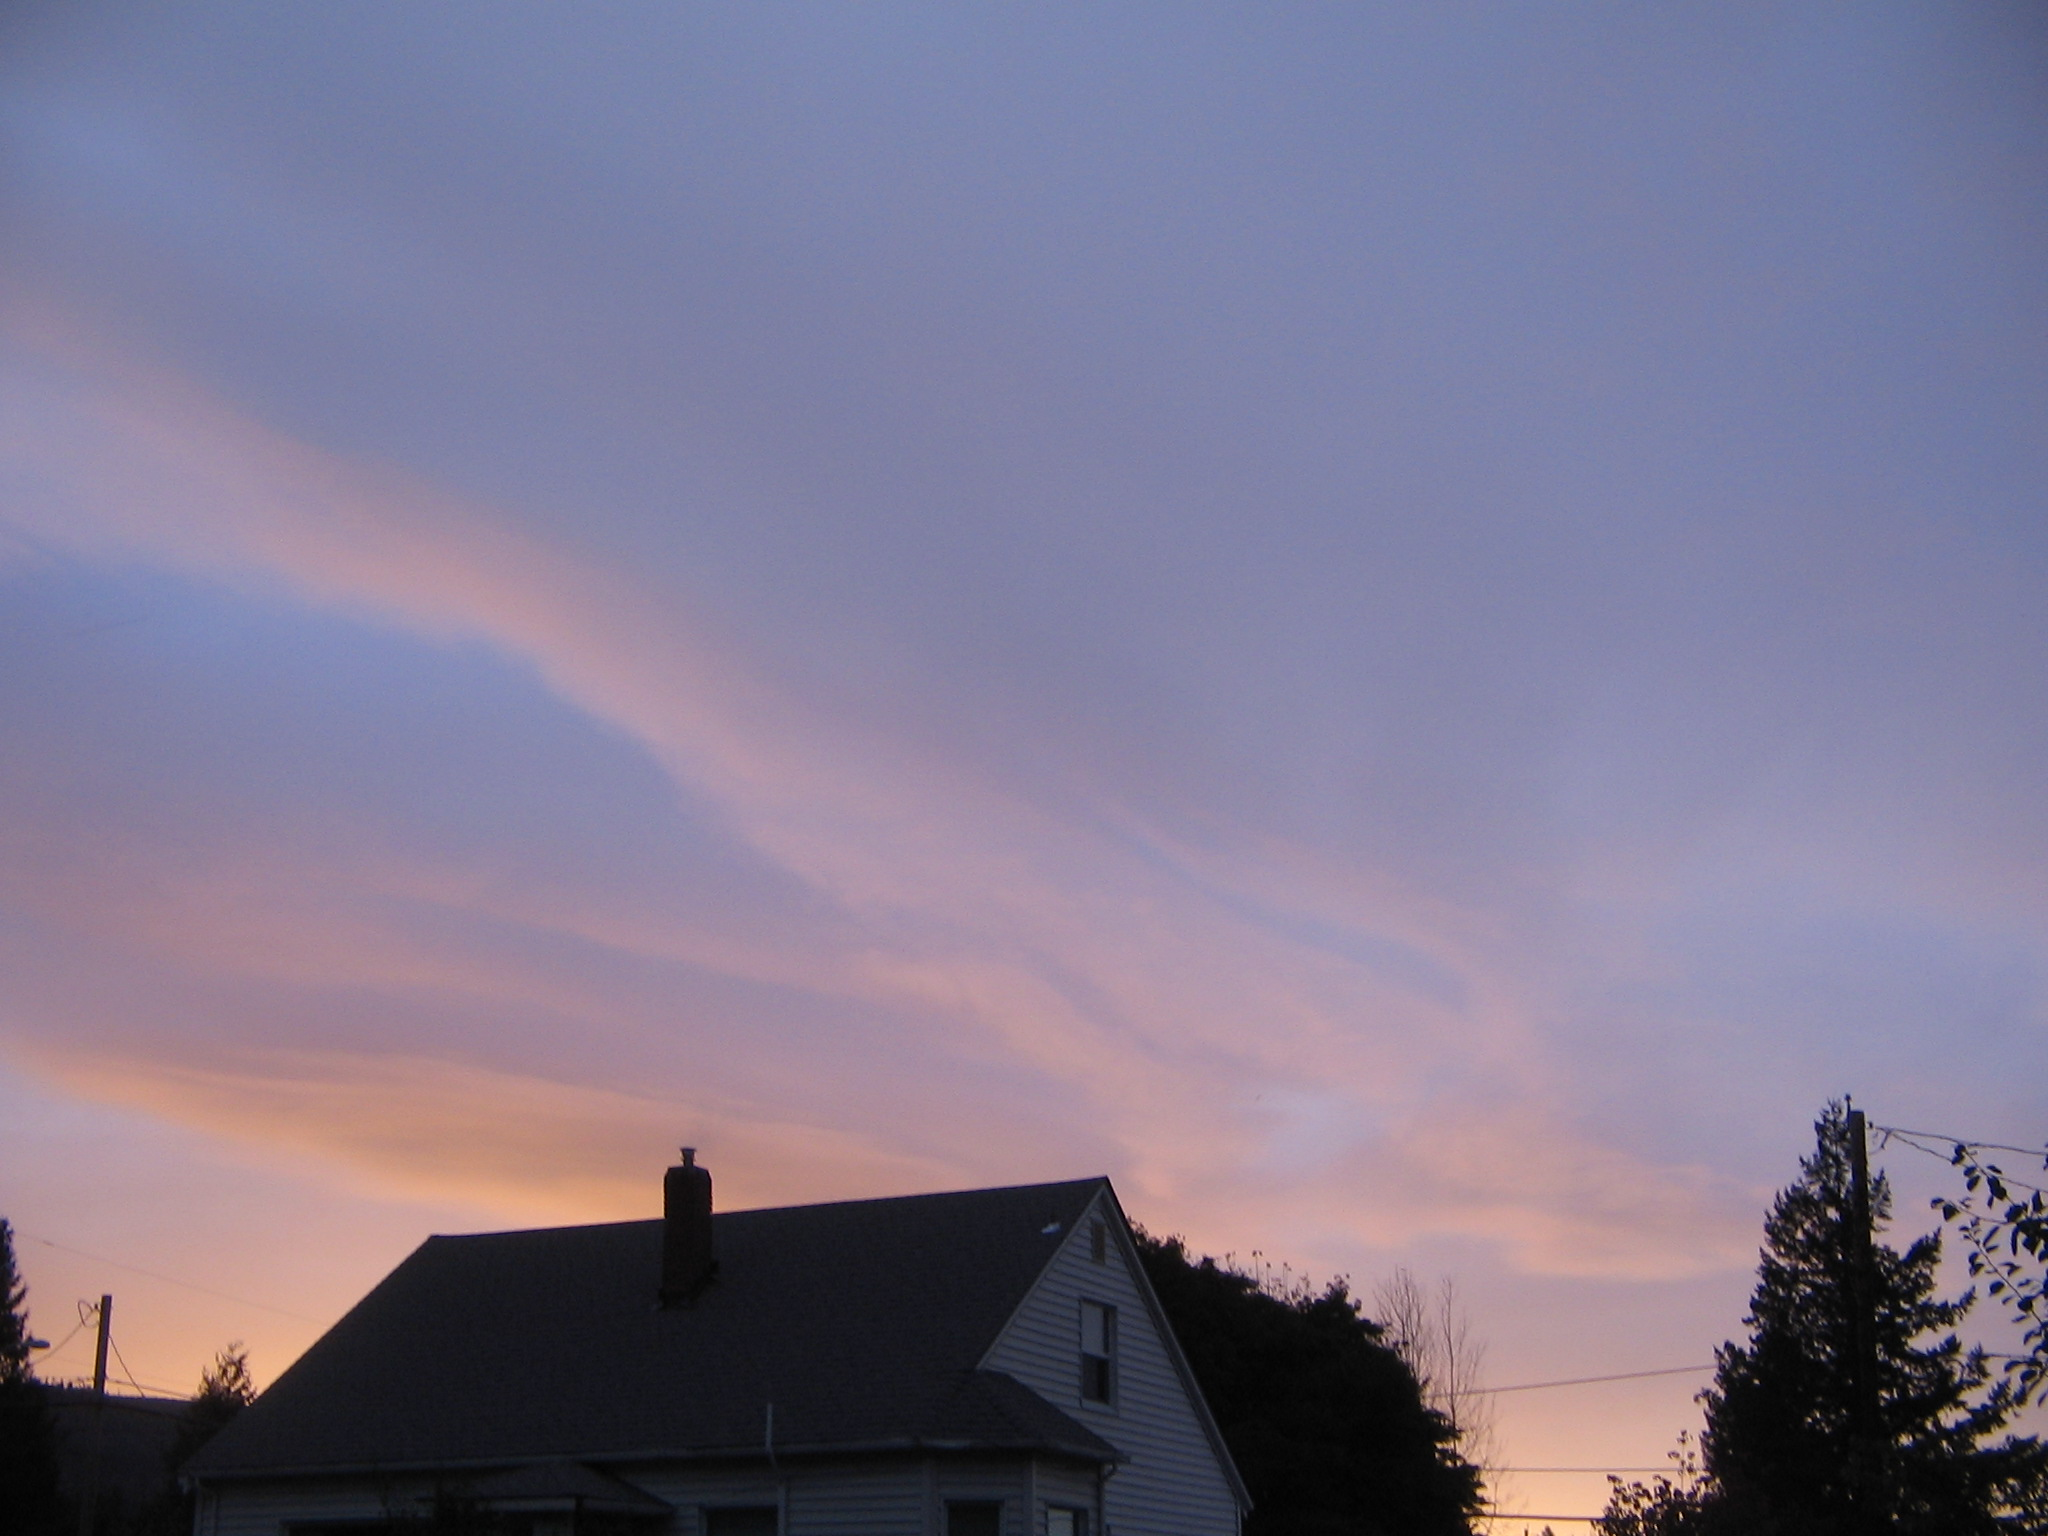 The sky at 6 pm in October.